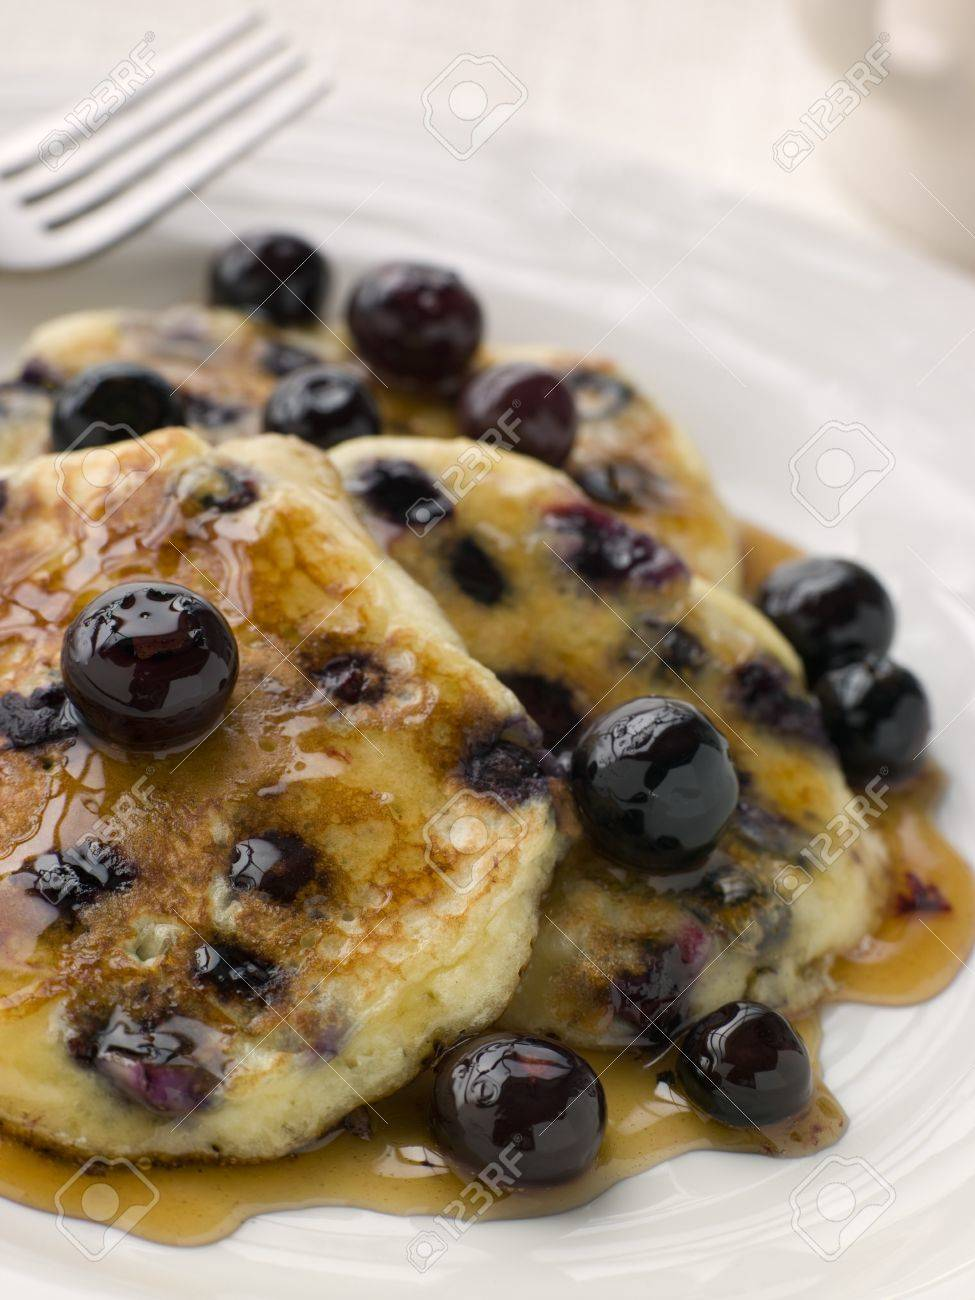 Plate Of Blueberry Pancakes With Maple Syrup Stock Photo - 4422440